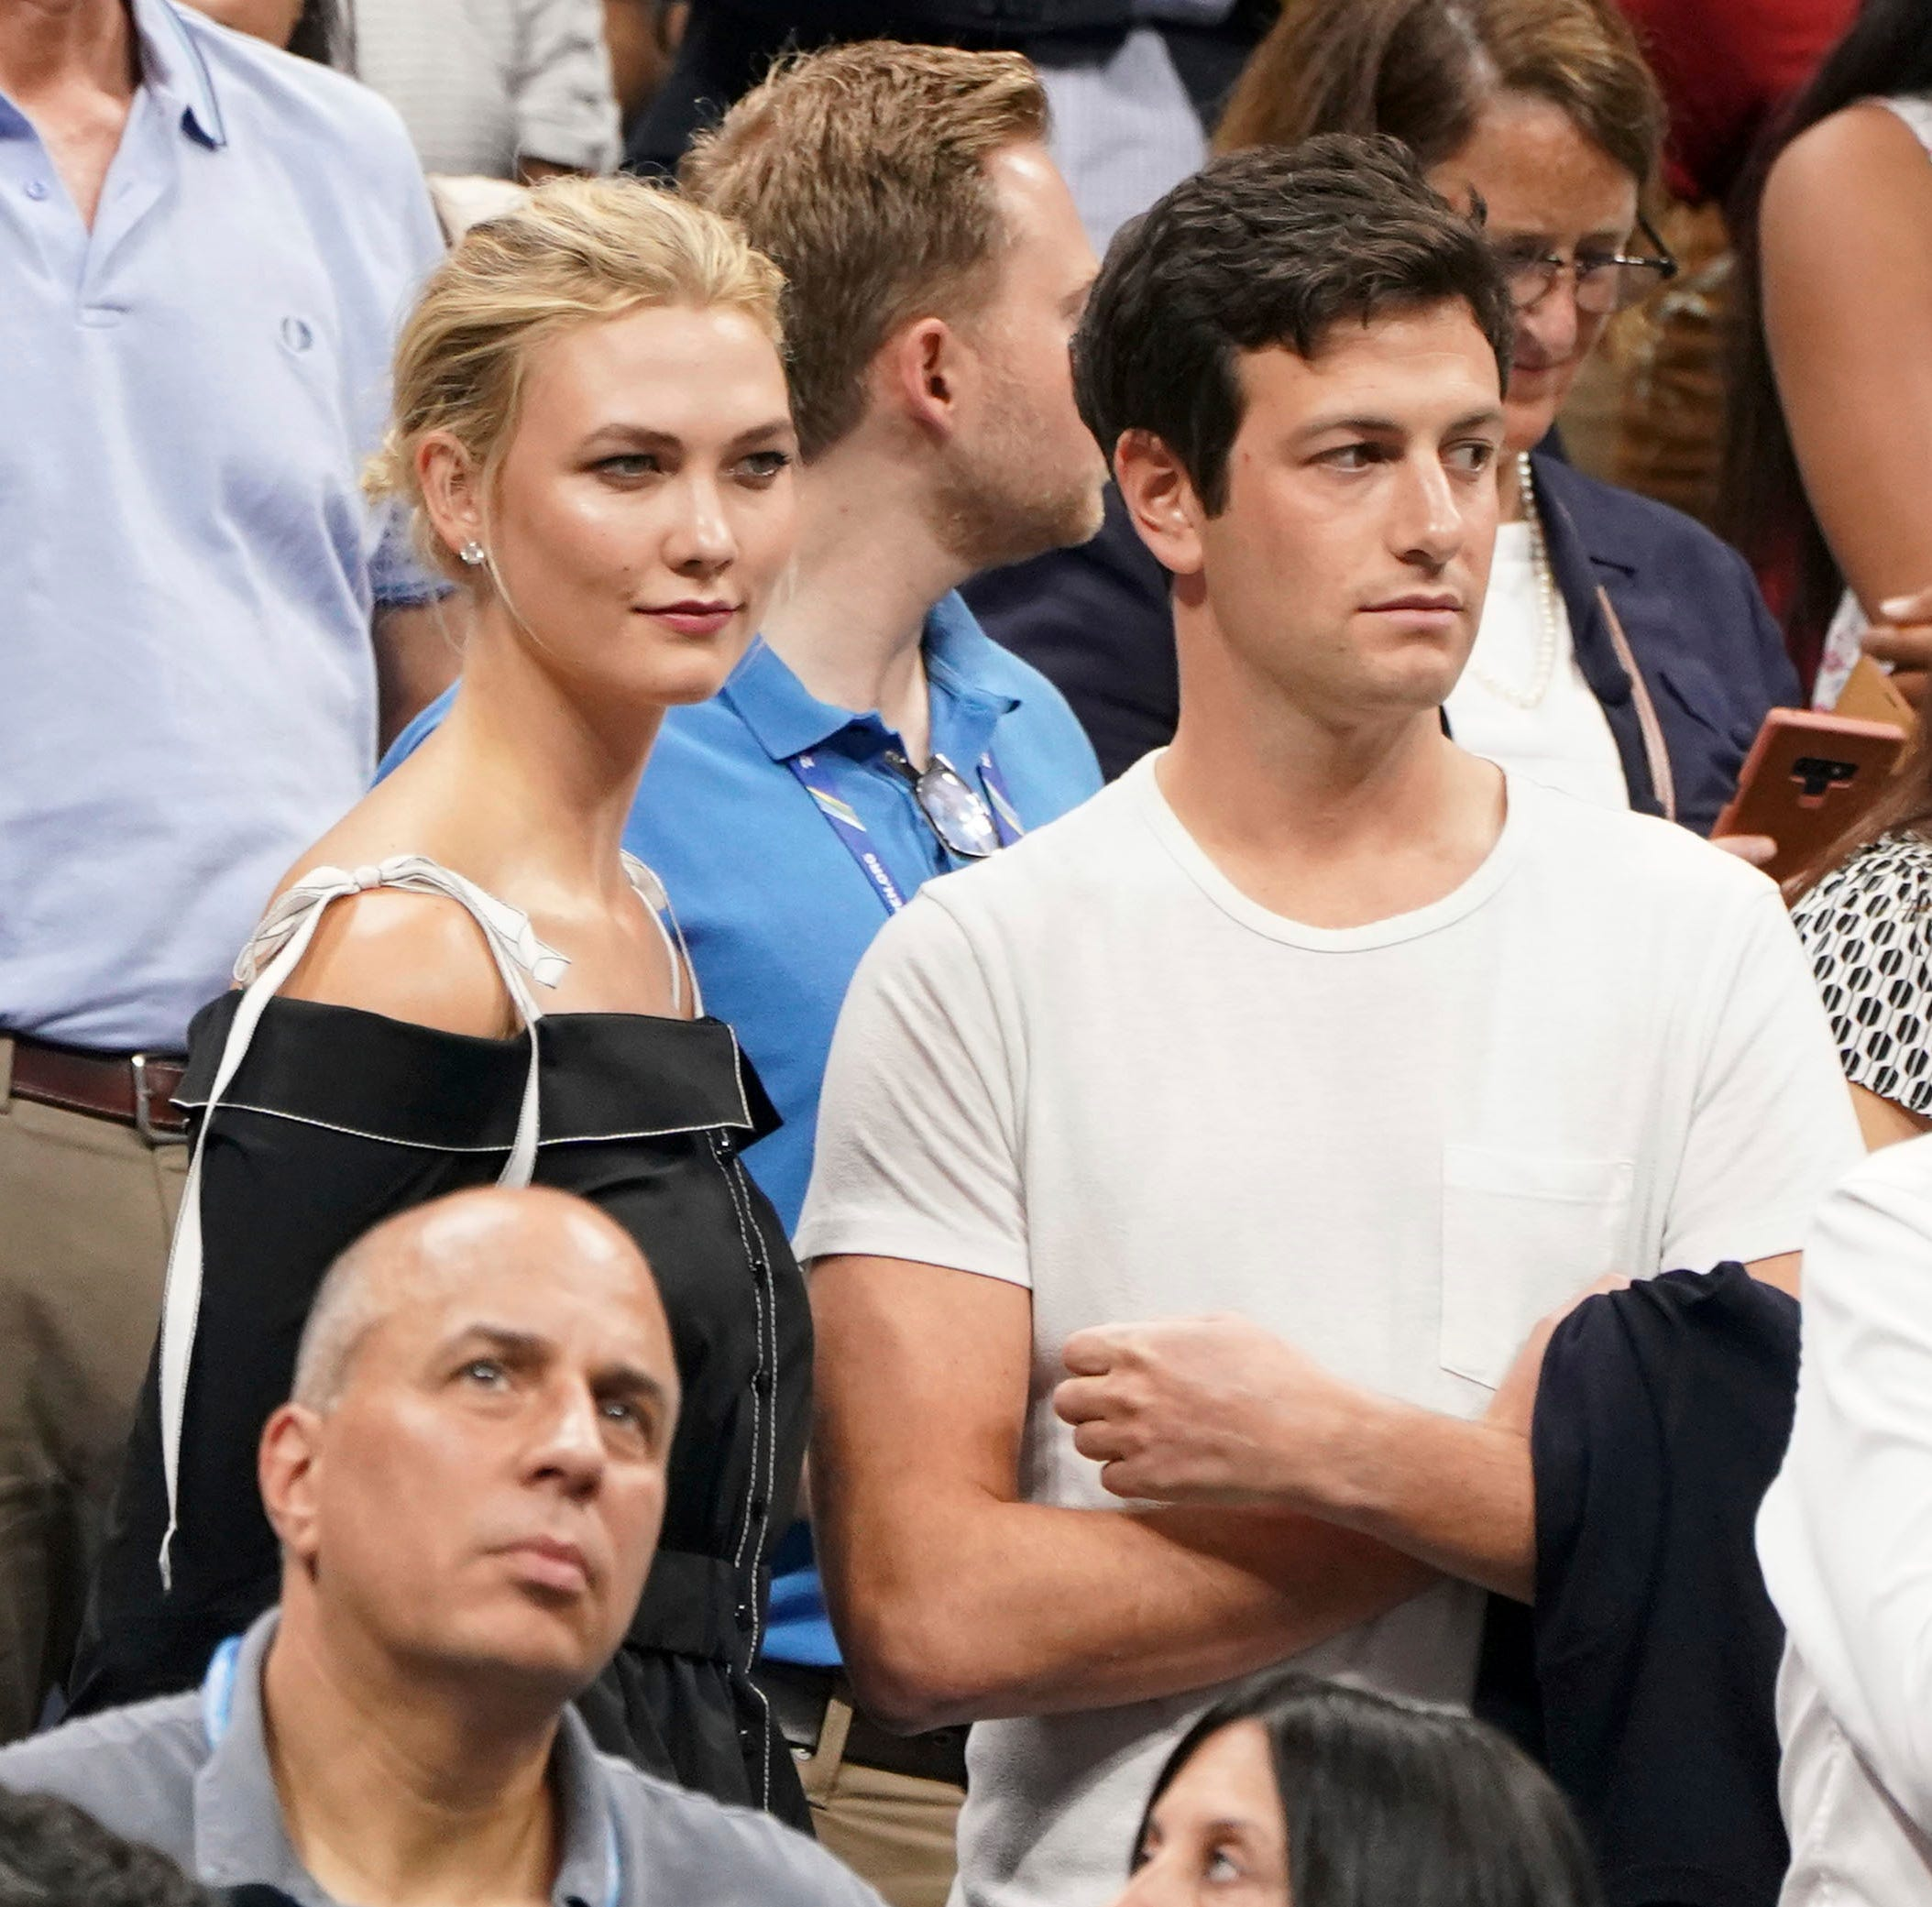 Husband of Karlie Kloss and brother of Jared Kushner acquires piece of Memphis Grizzlies